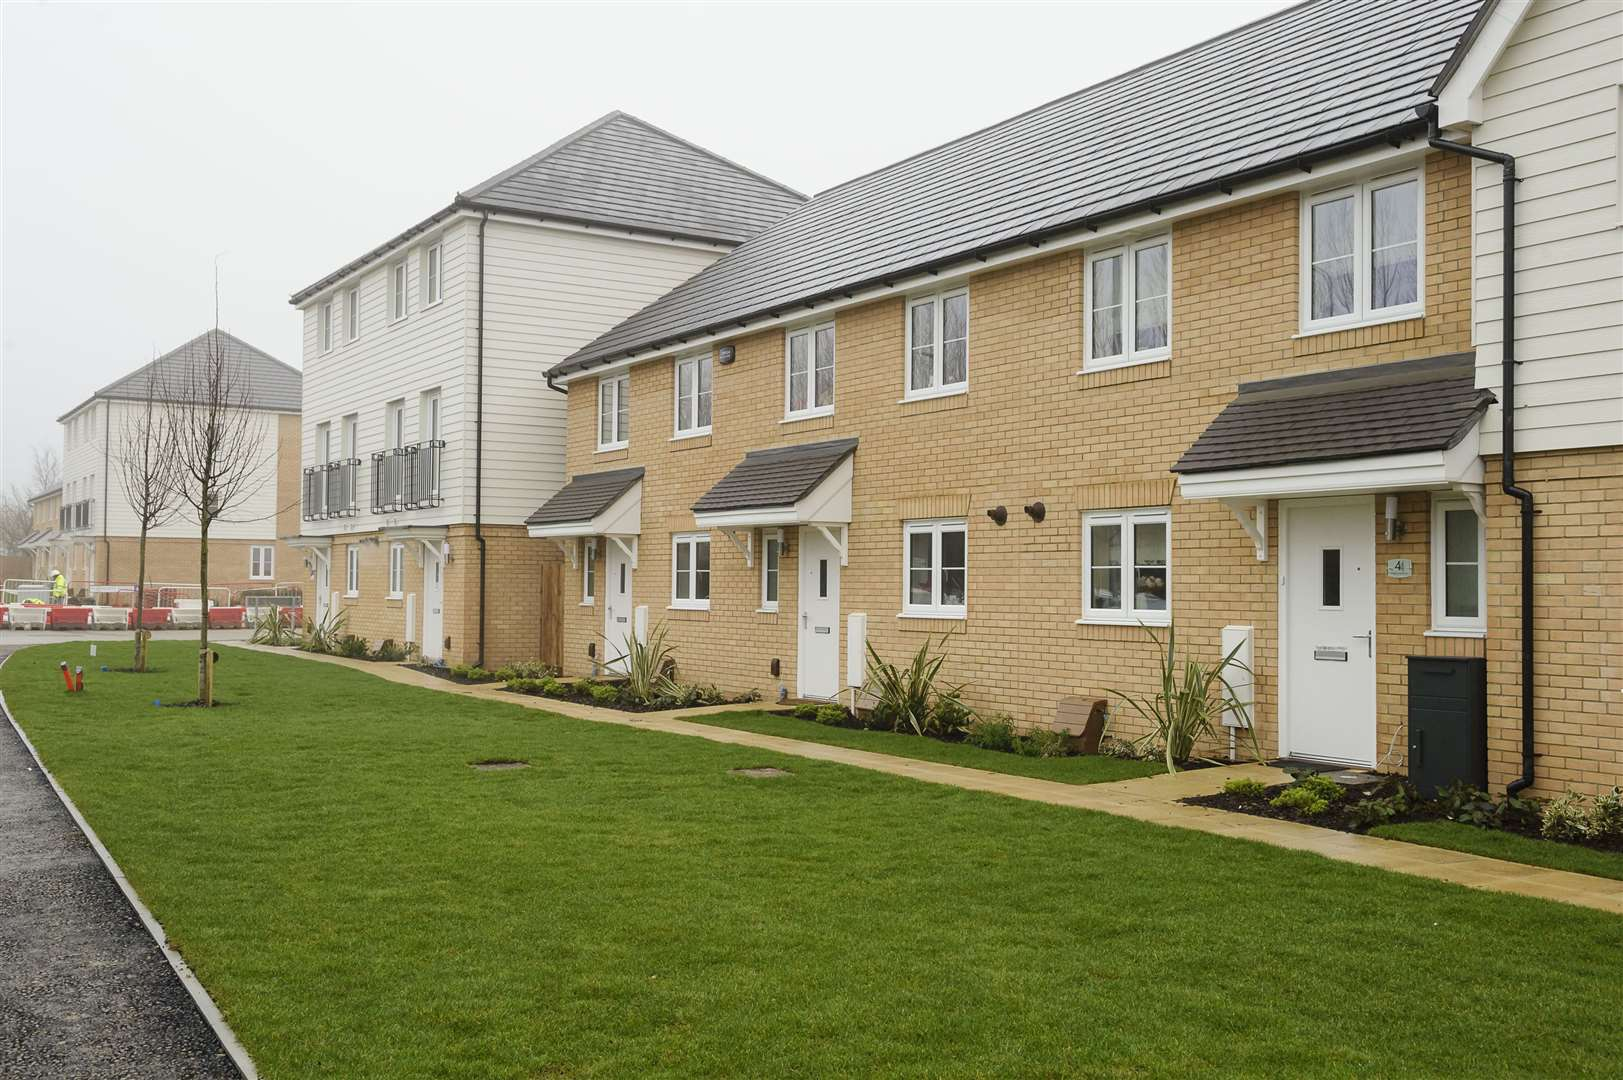 Bovis Homes' Orchard Fields development - one of the many along Hermitage Lane